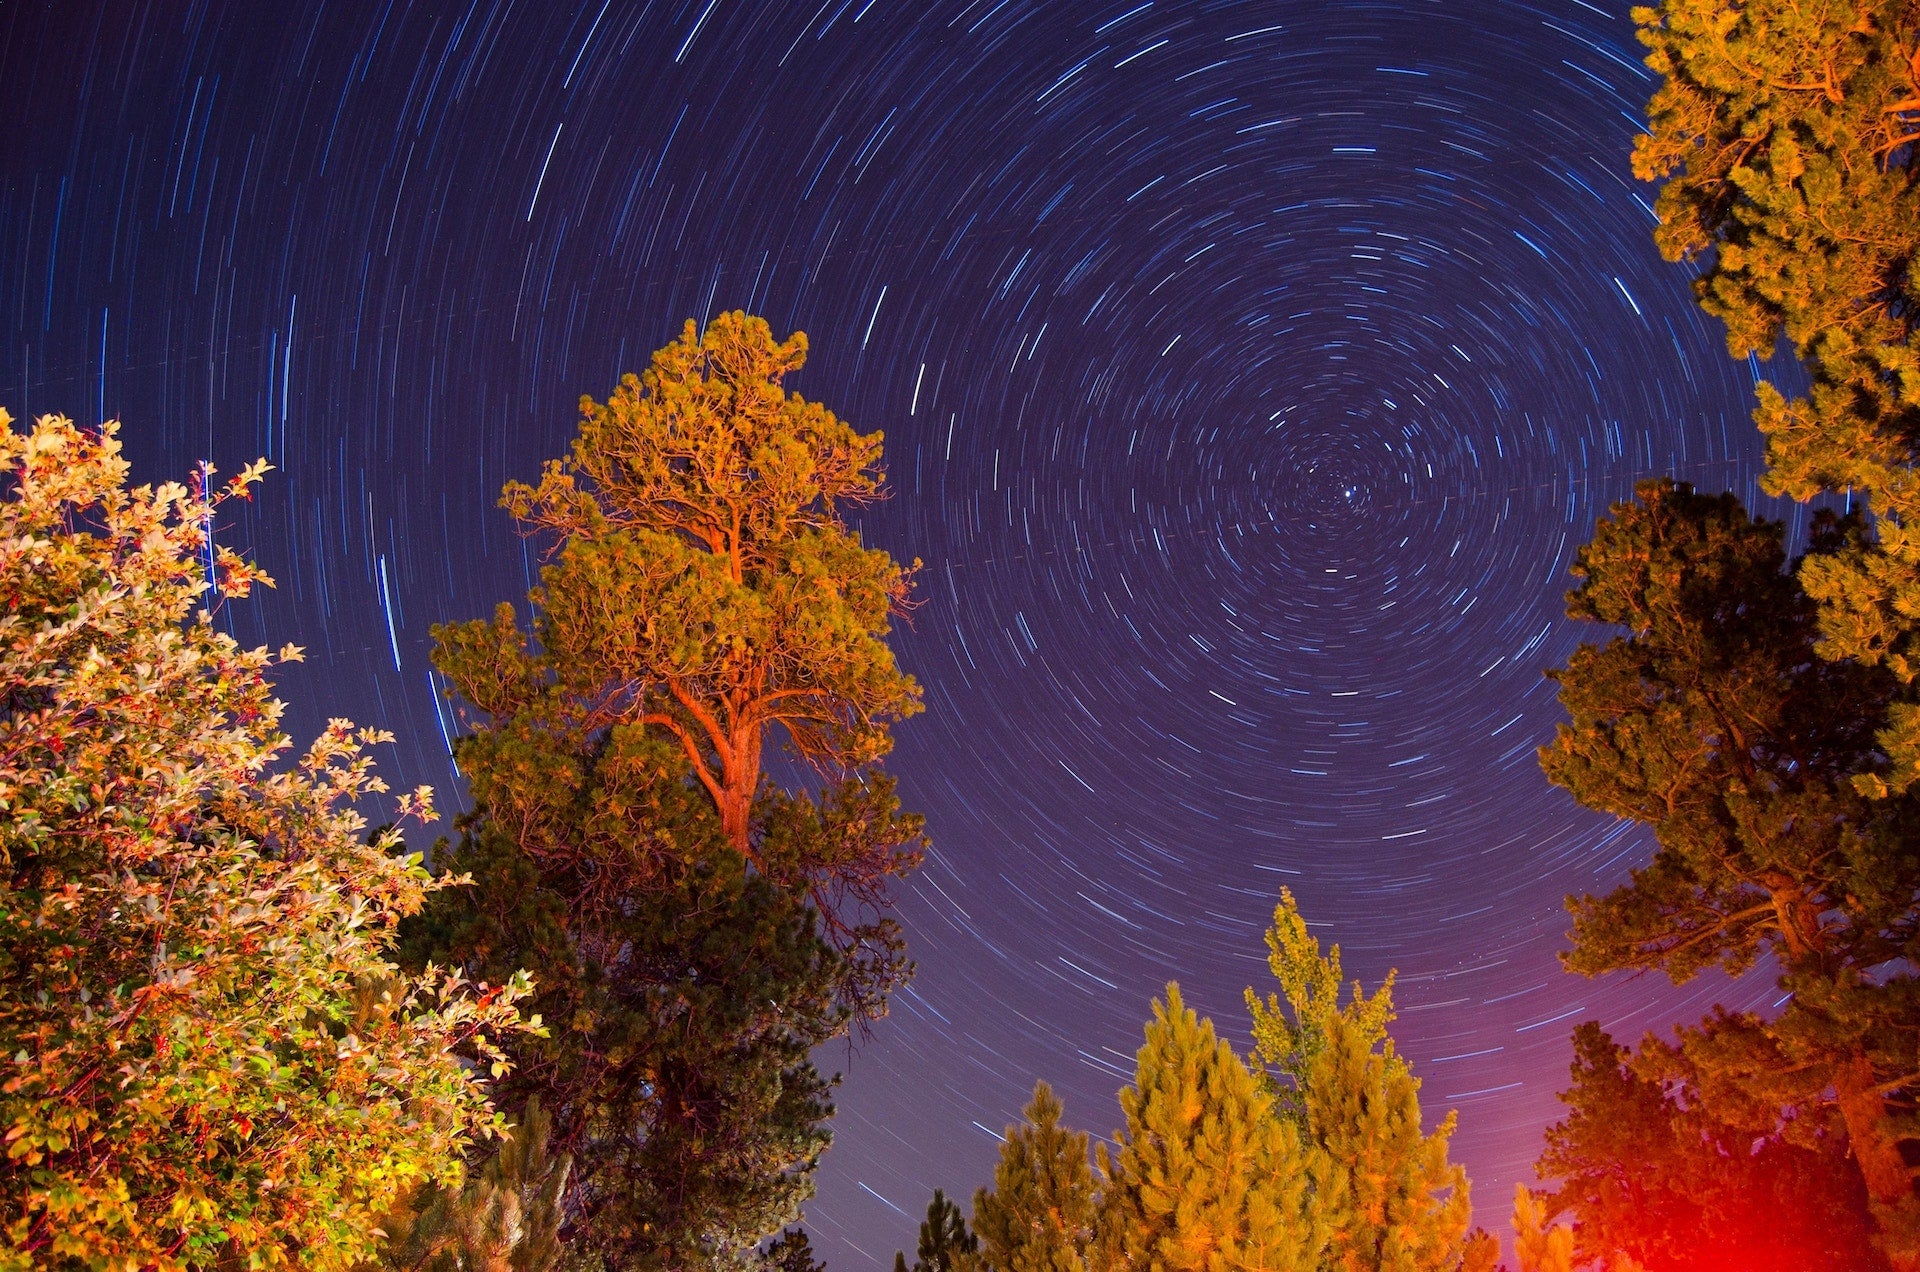 How to Take Star Trails